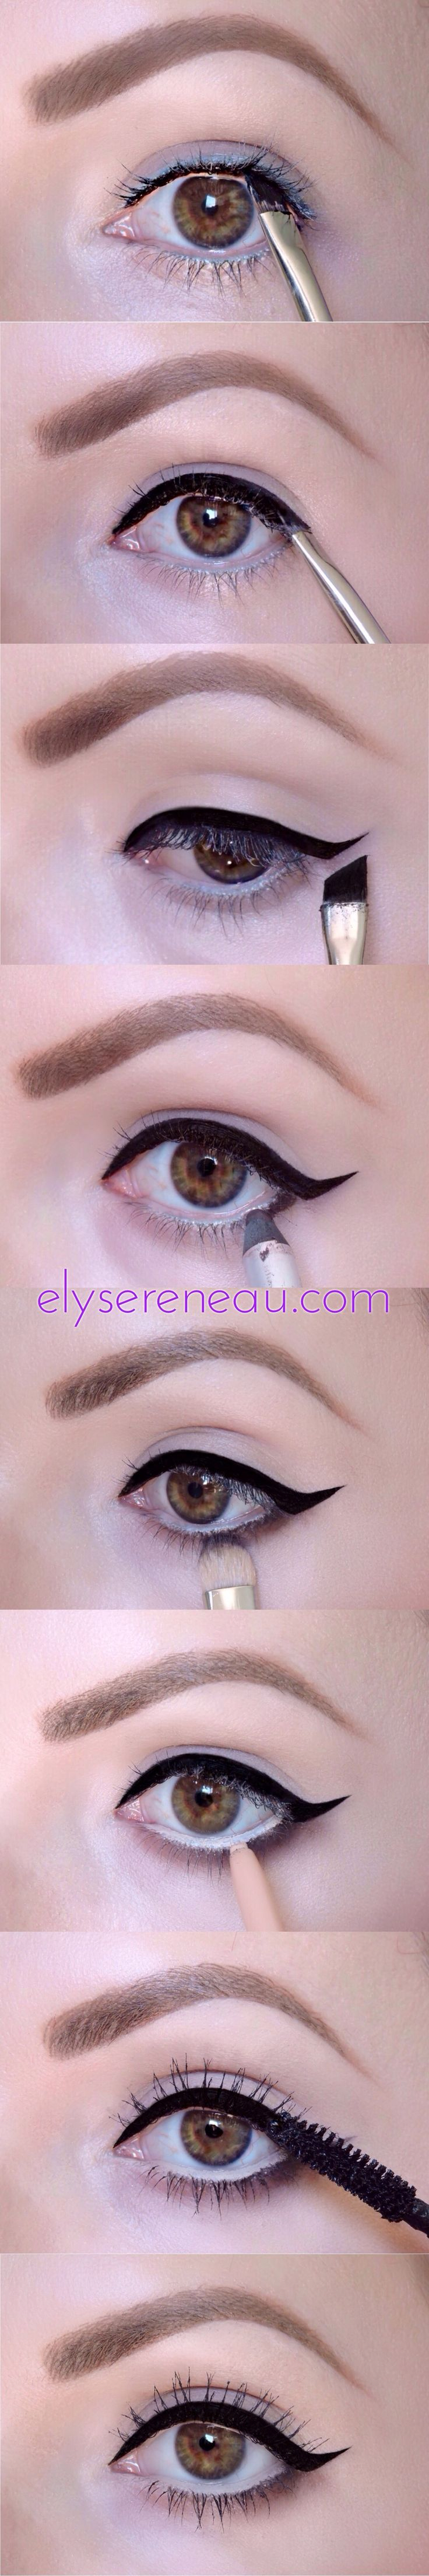 Simple retro eyeliner tutorial: winged eyeliner